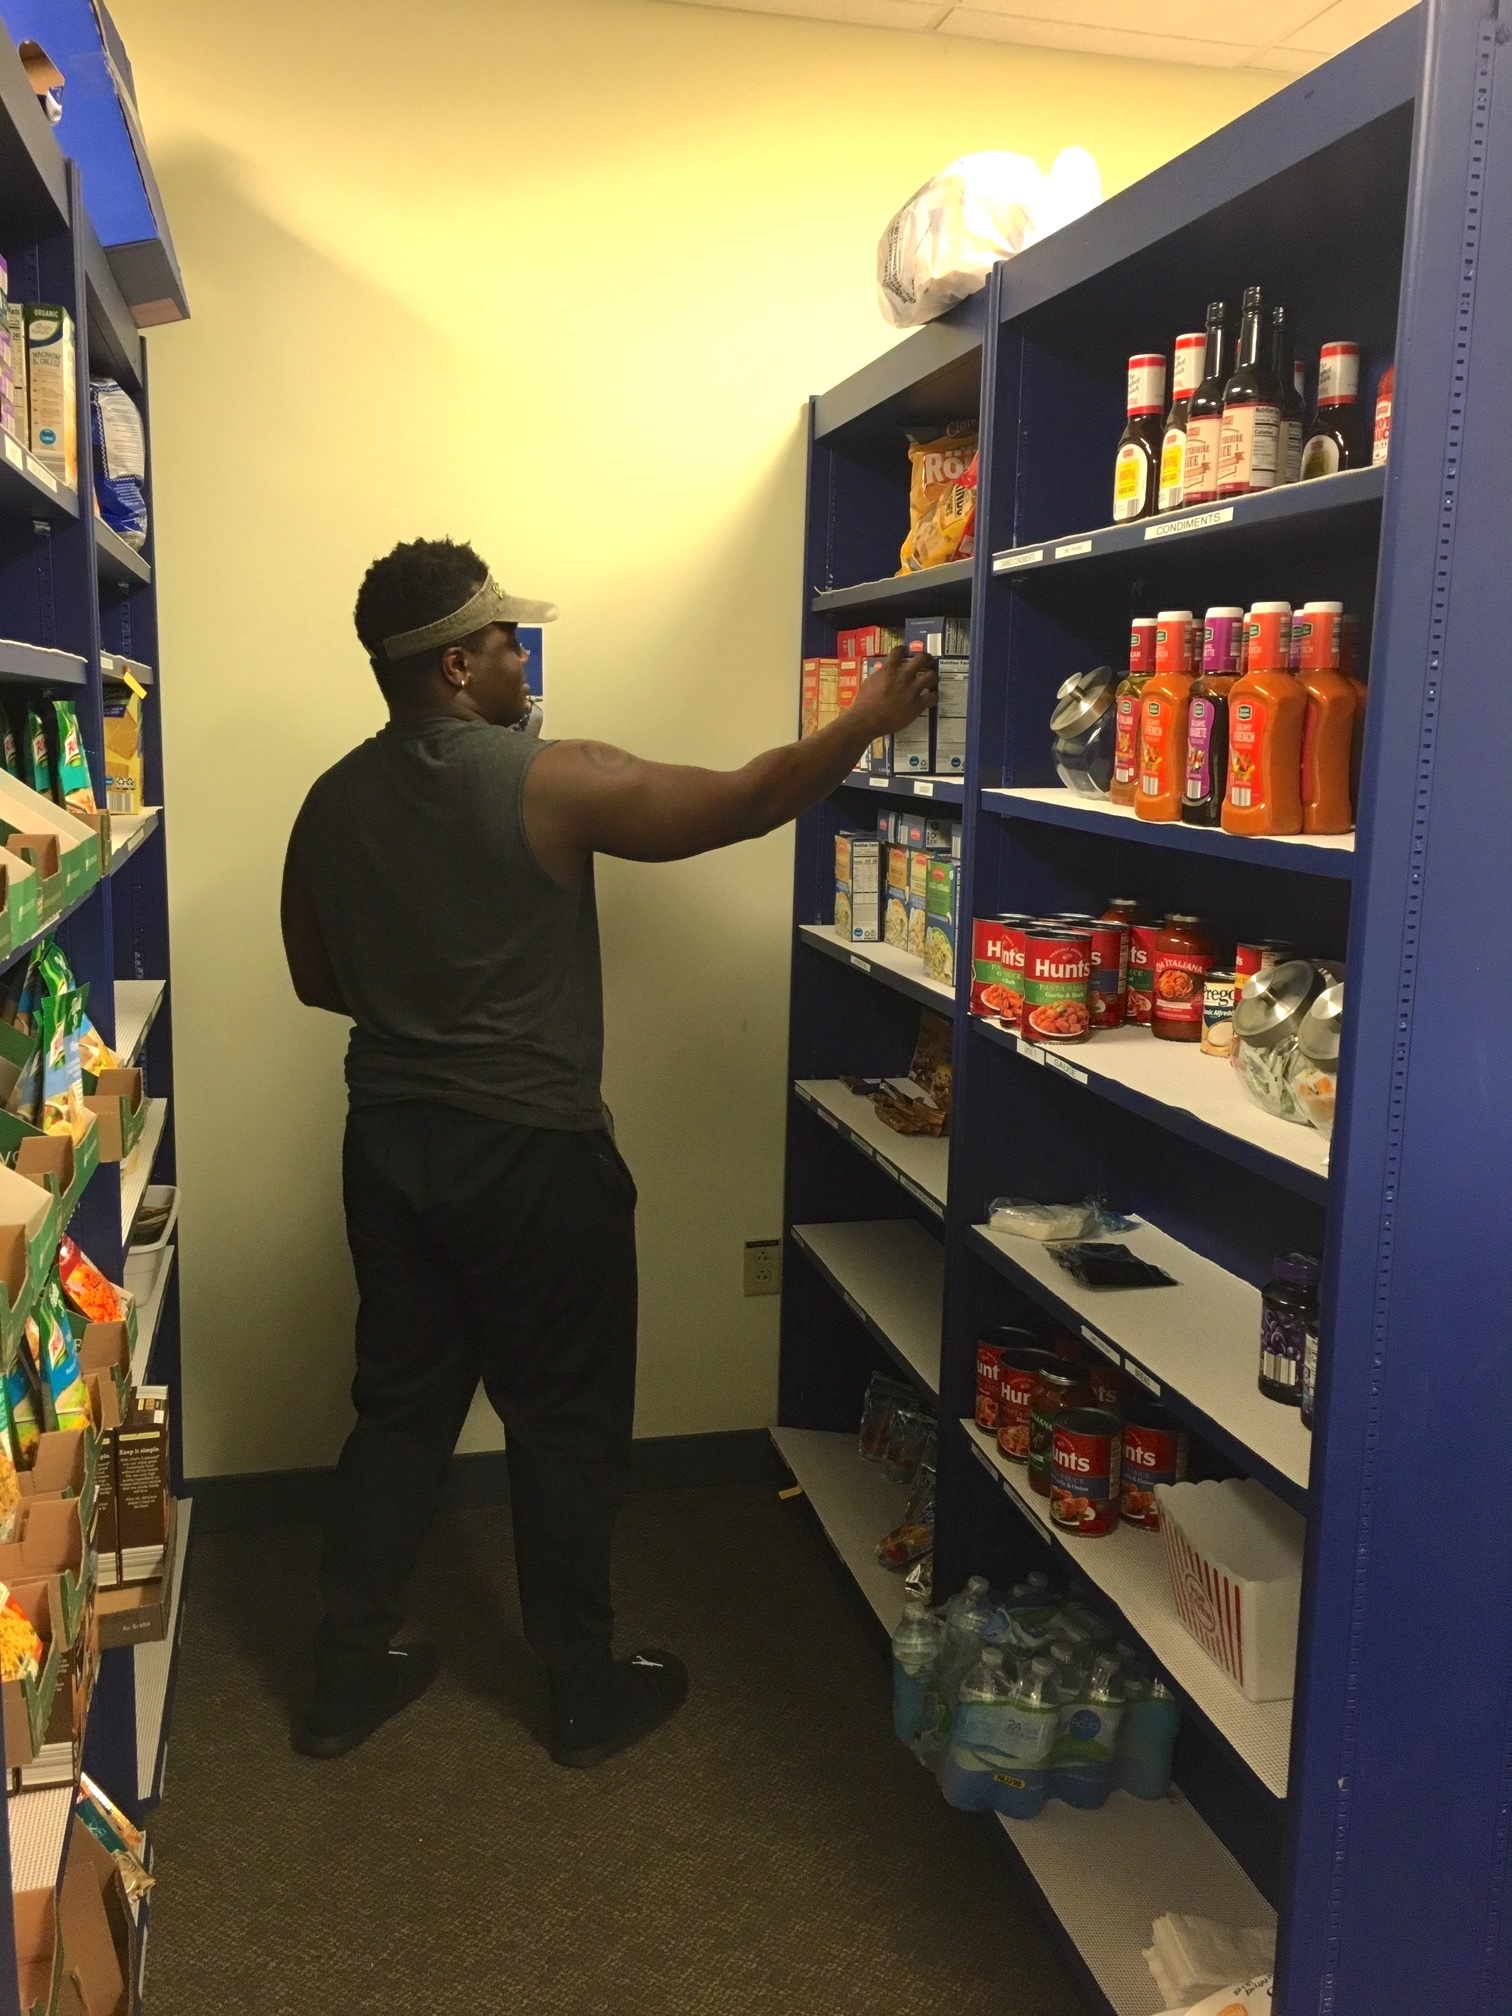 Student stocking shelves of food